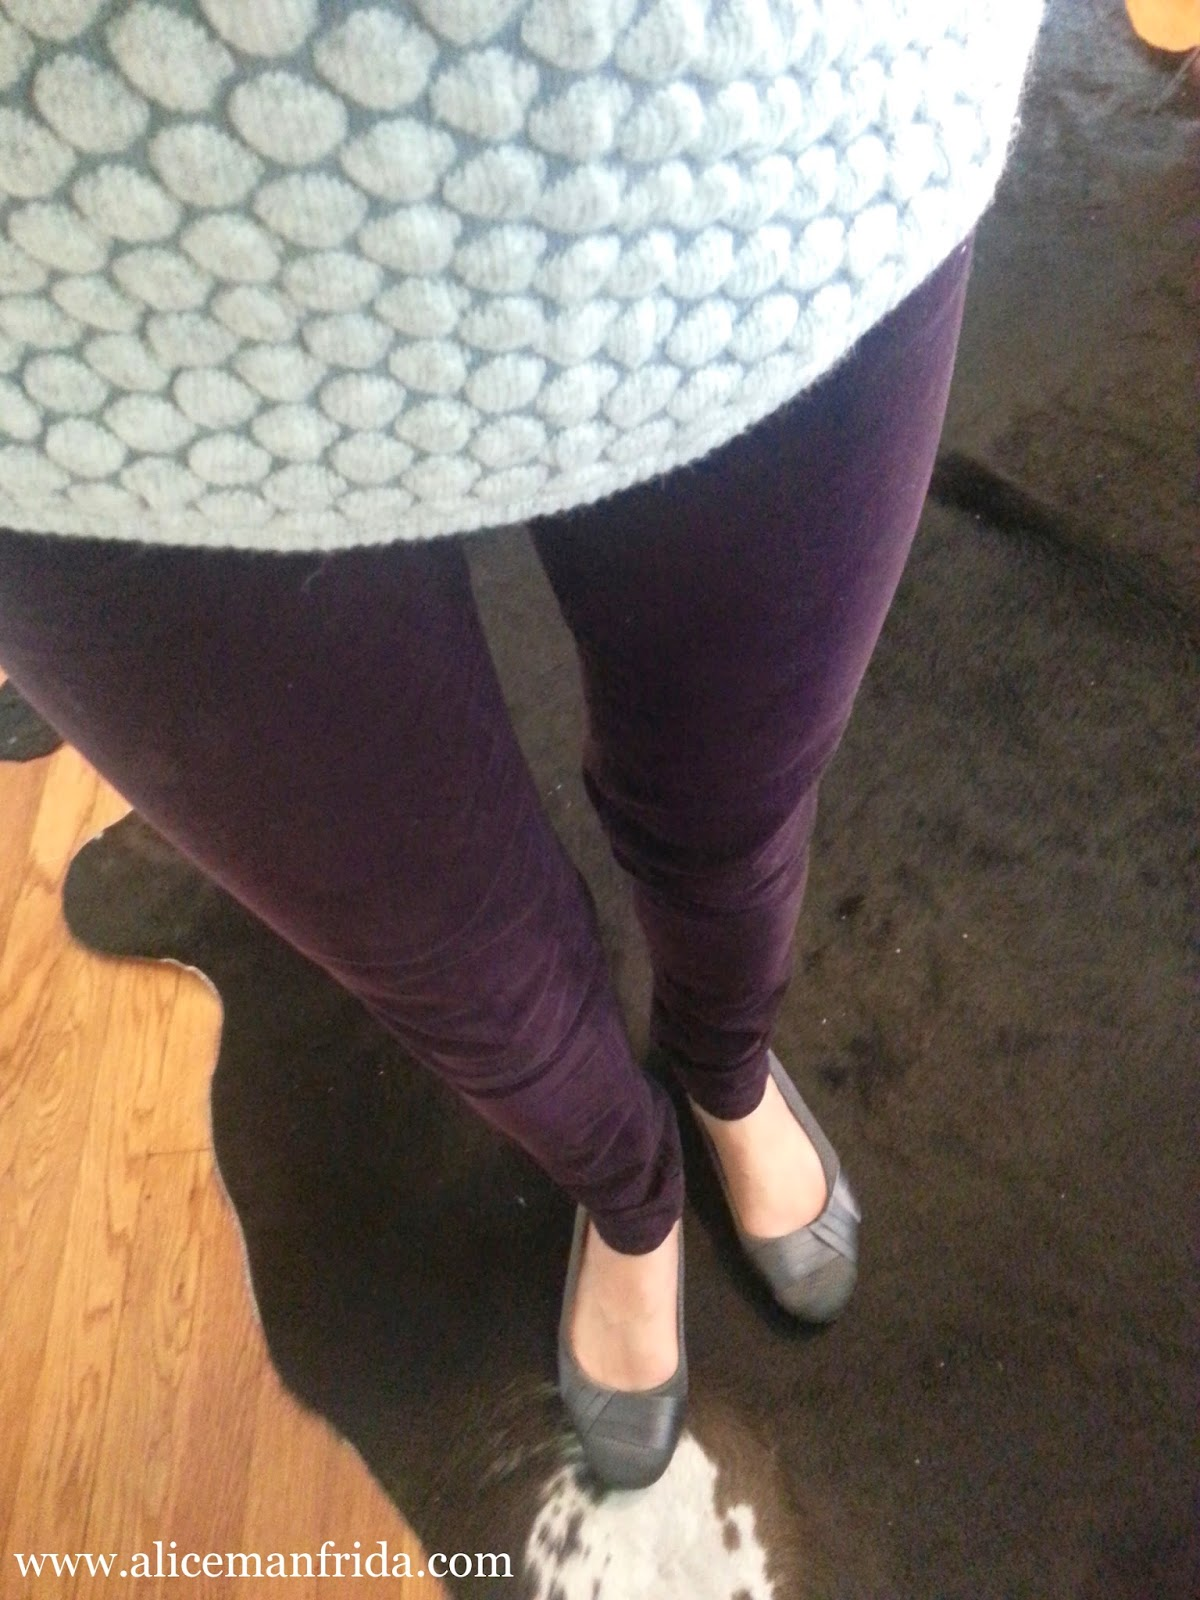 ootd, outfit of the day, purple skinny jeans, H&M, gray